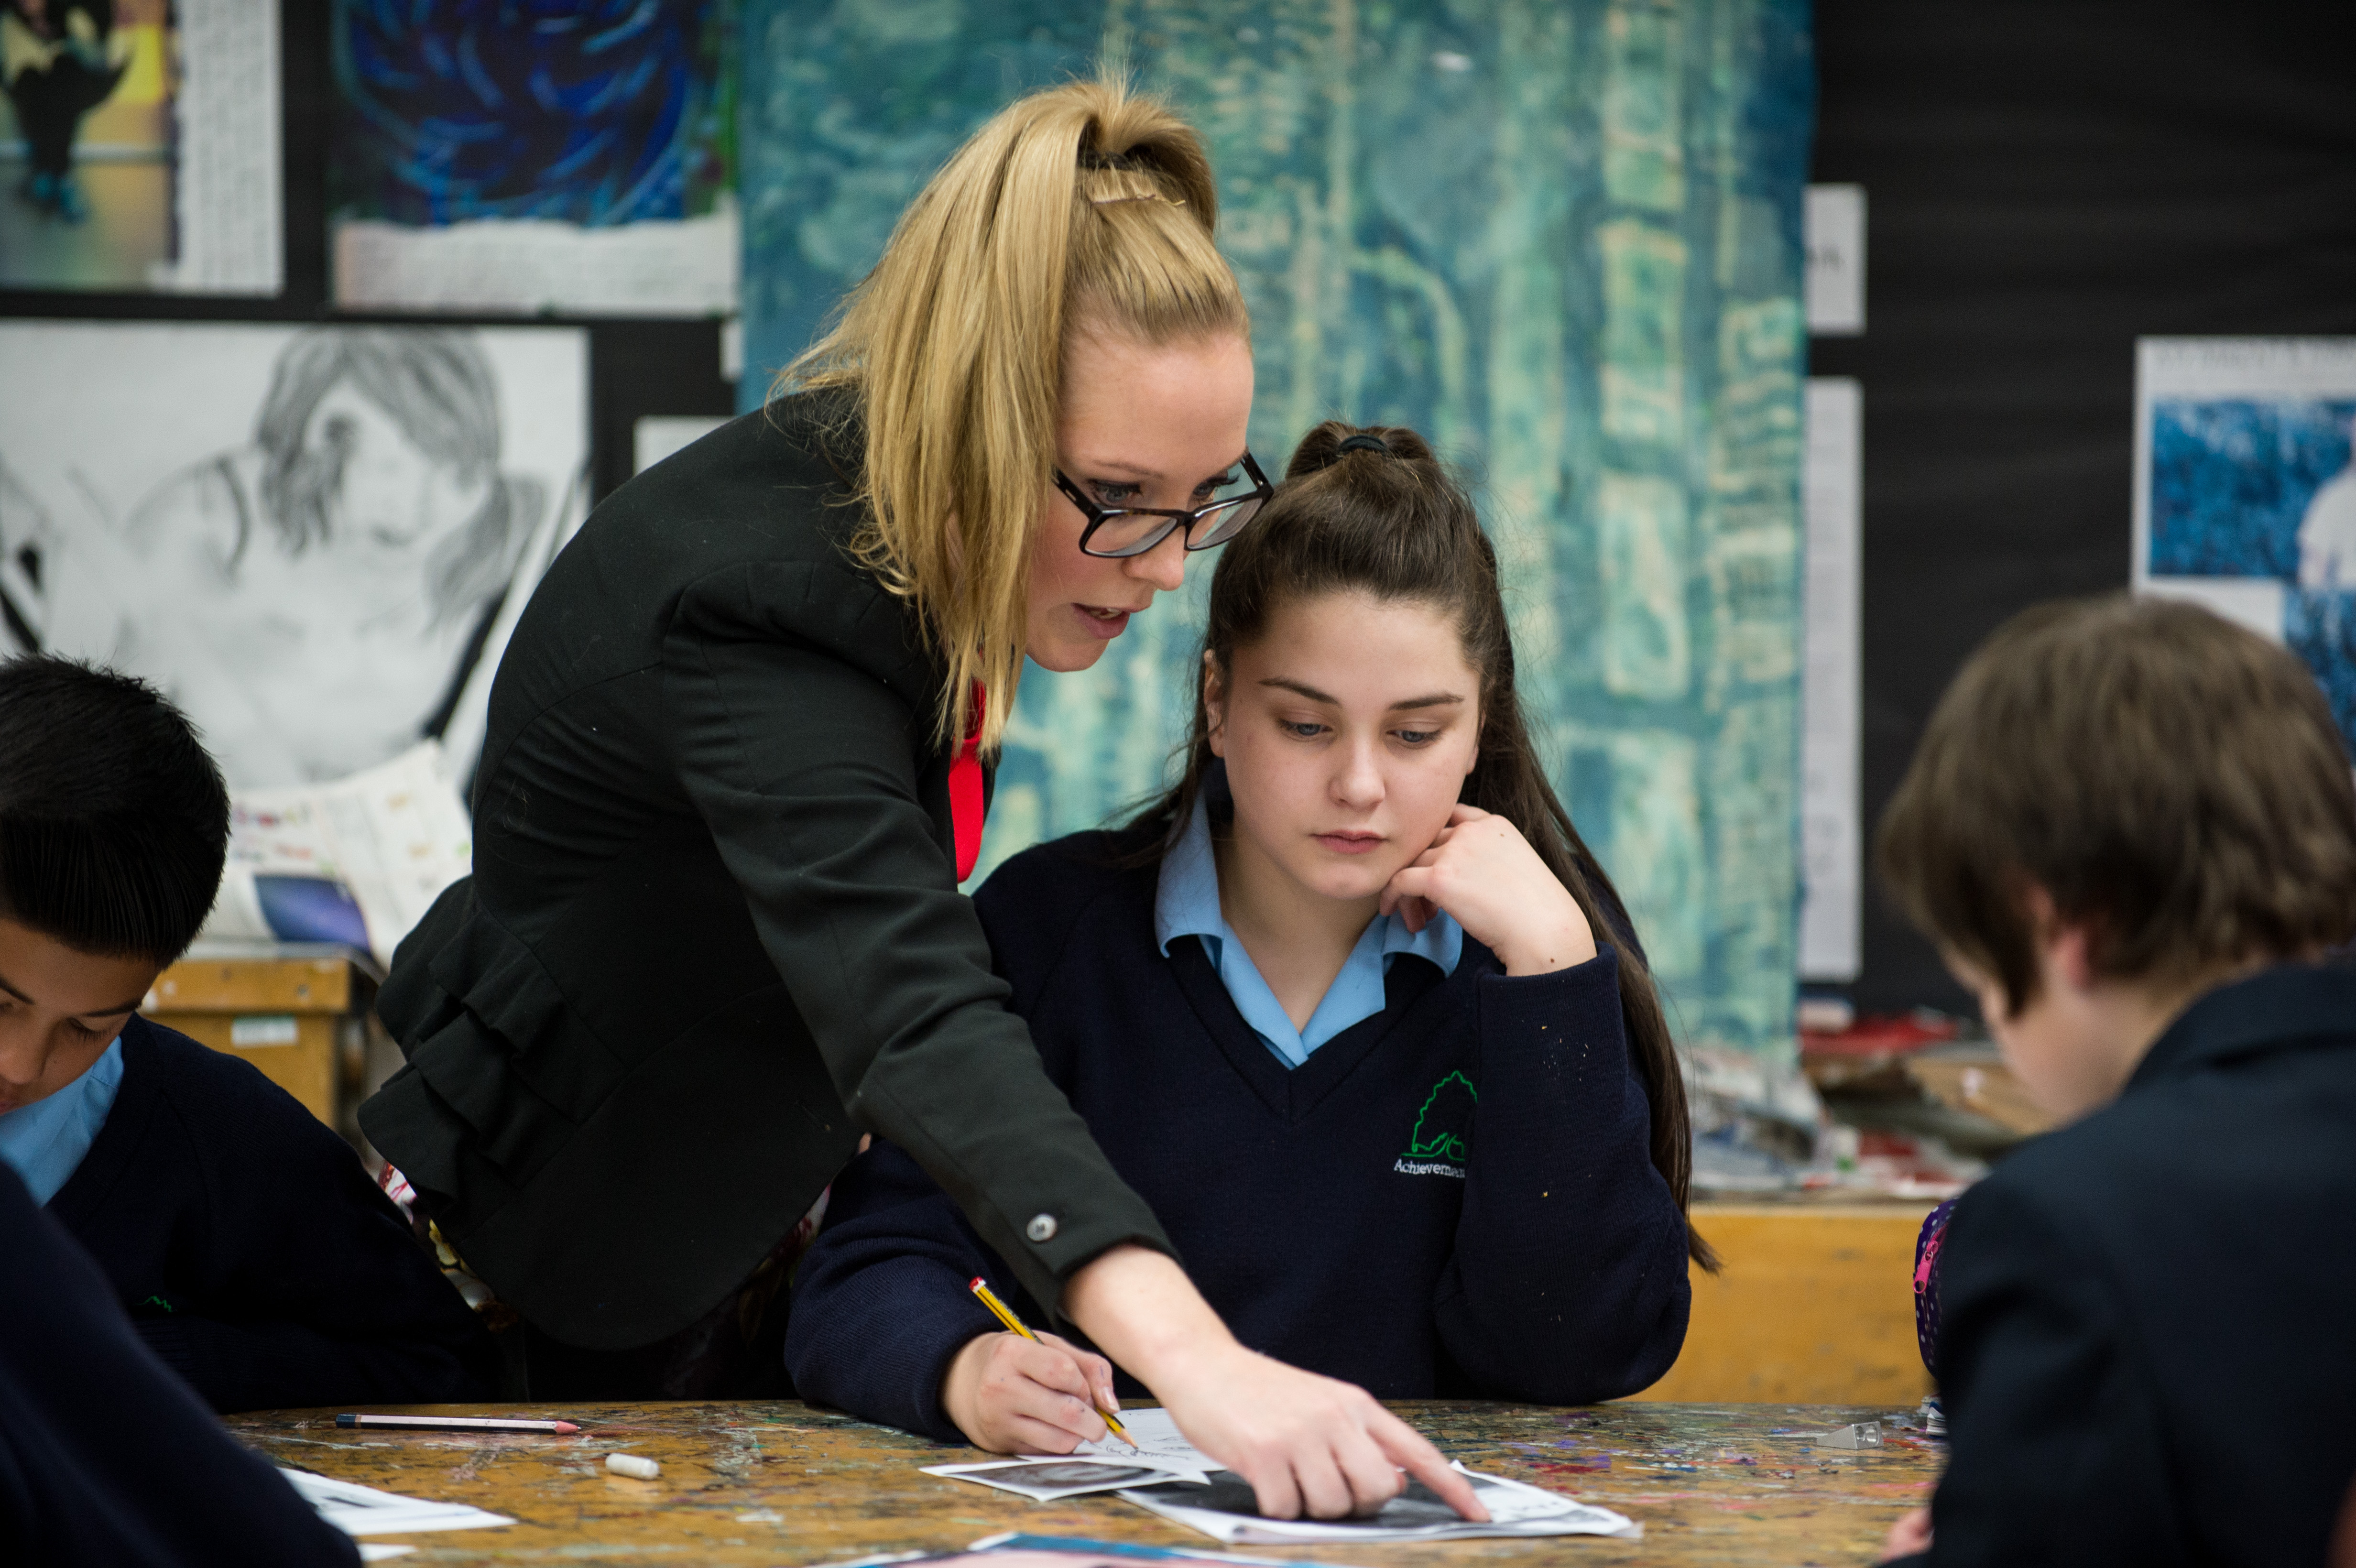 The value of arts CPD for teachers and arts professionals